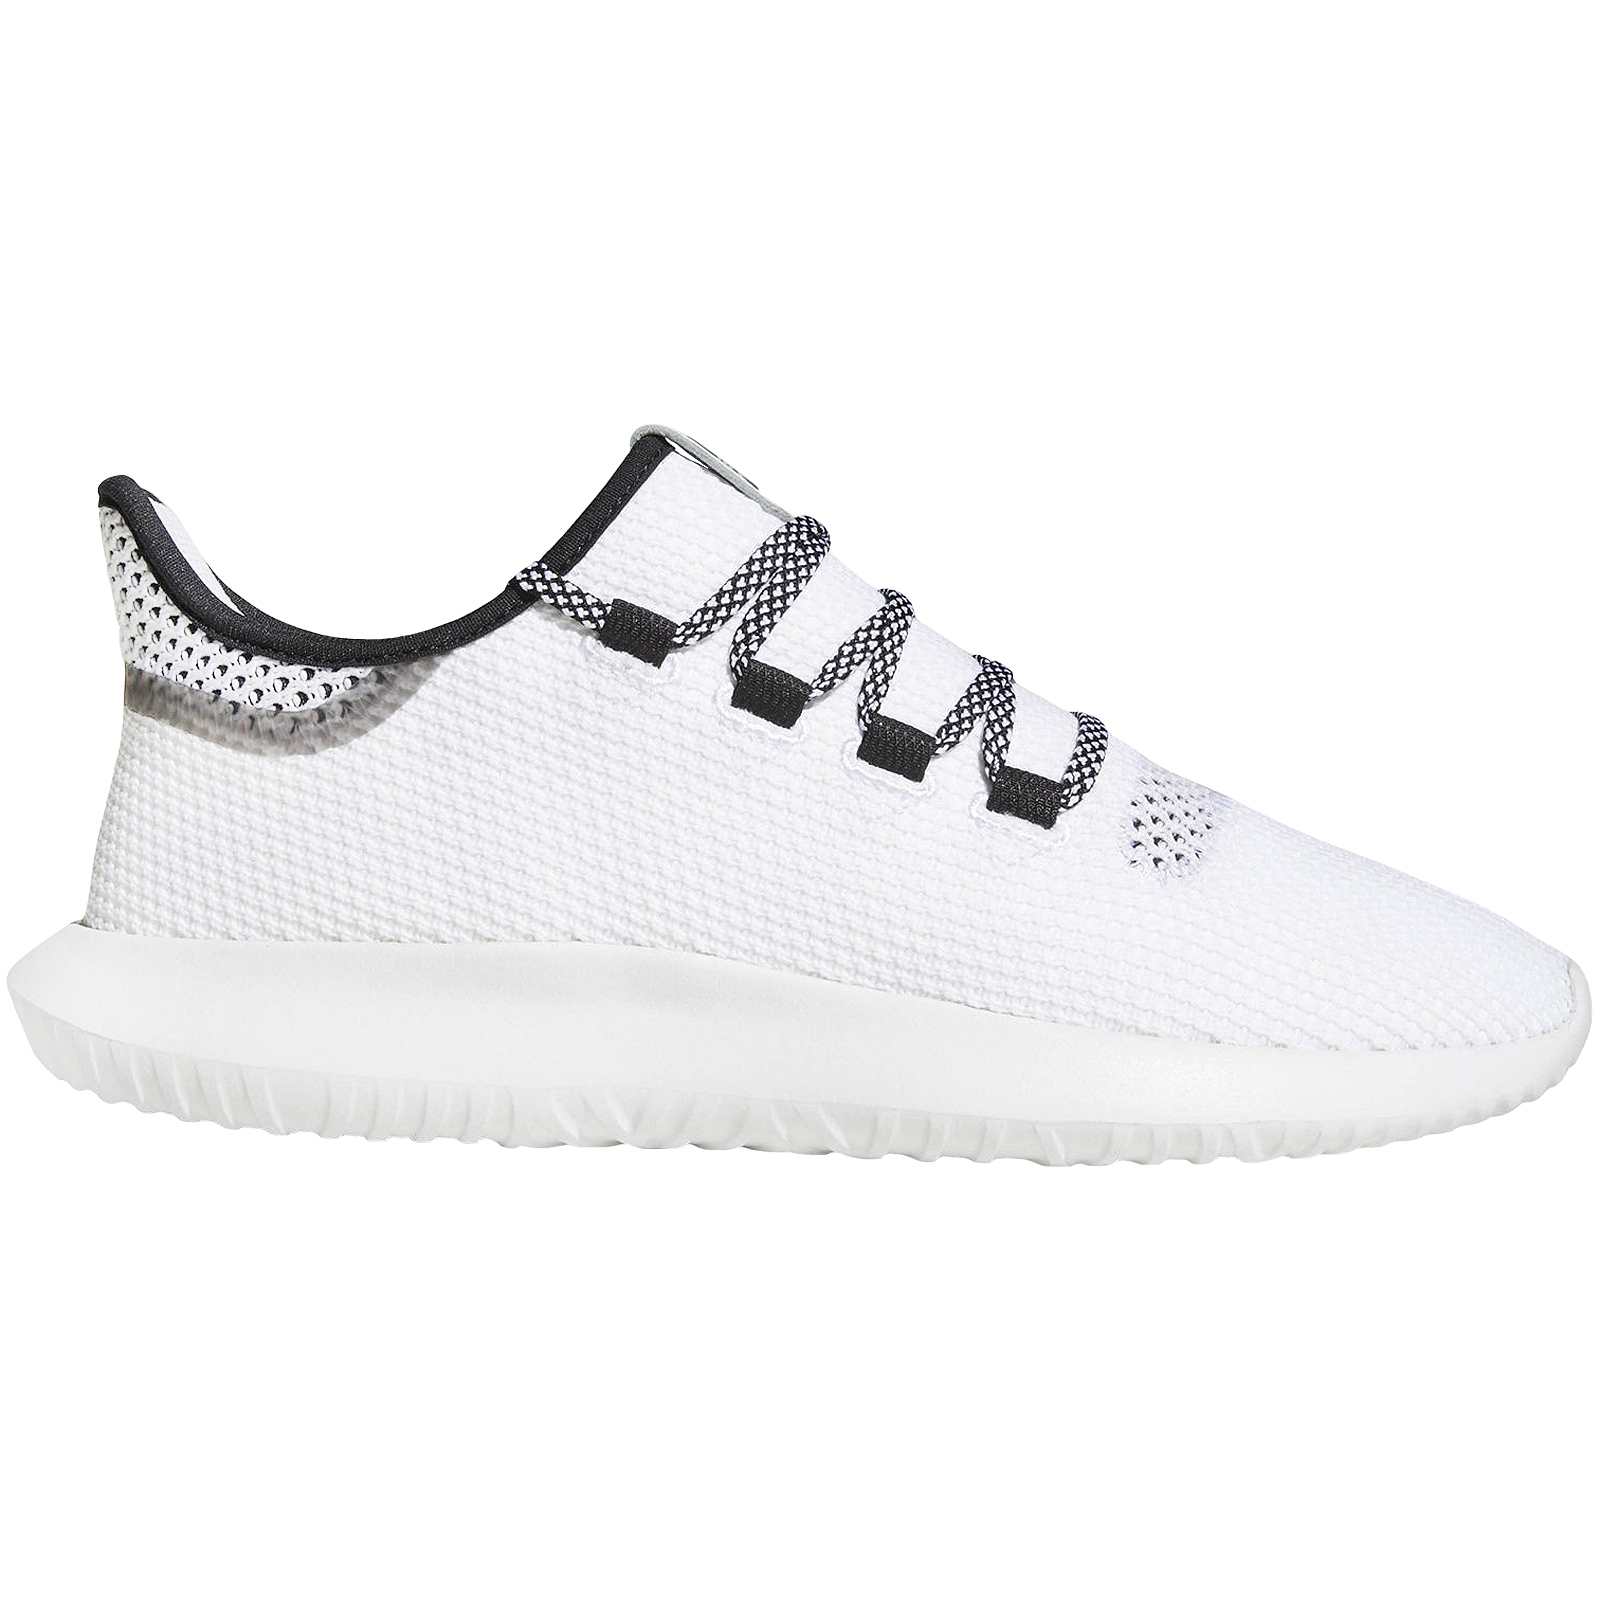 10d330c35111 Details about adidas Originals Mens Tubular Shadow CK Lace Up Casual Knit Trainers  Shoes-White